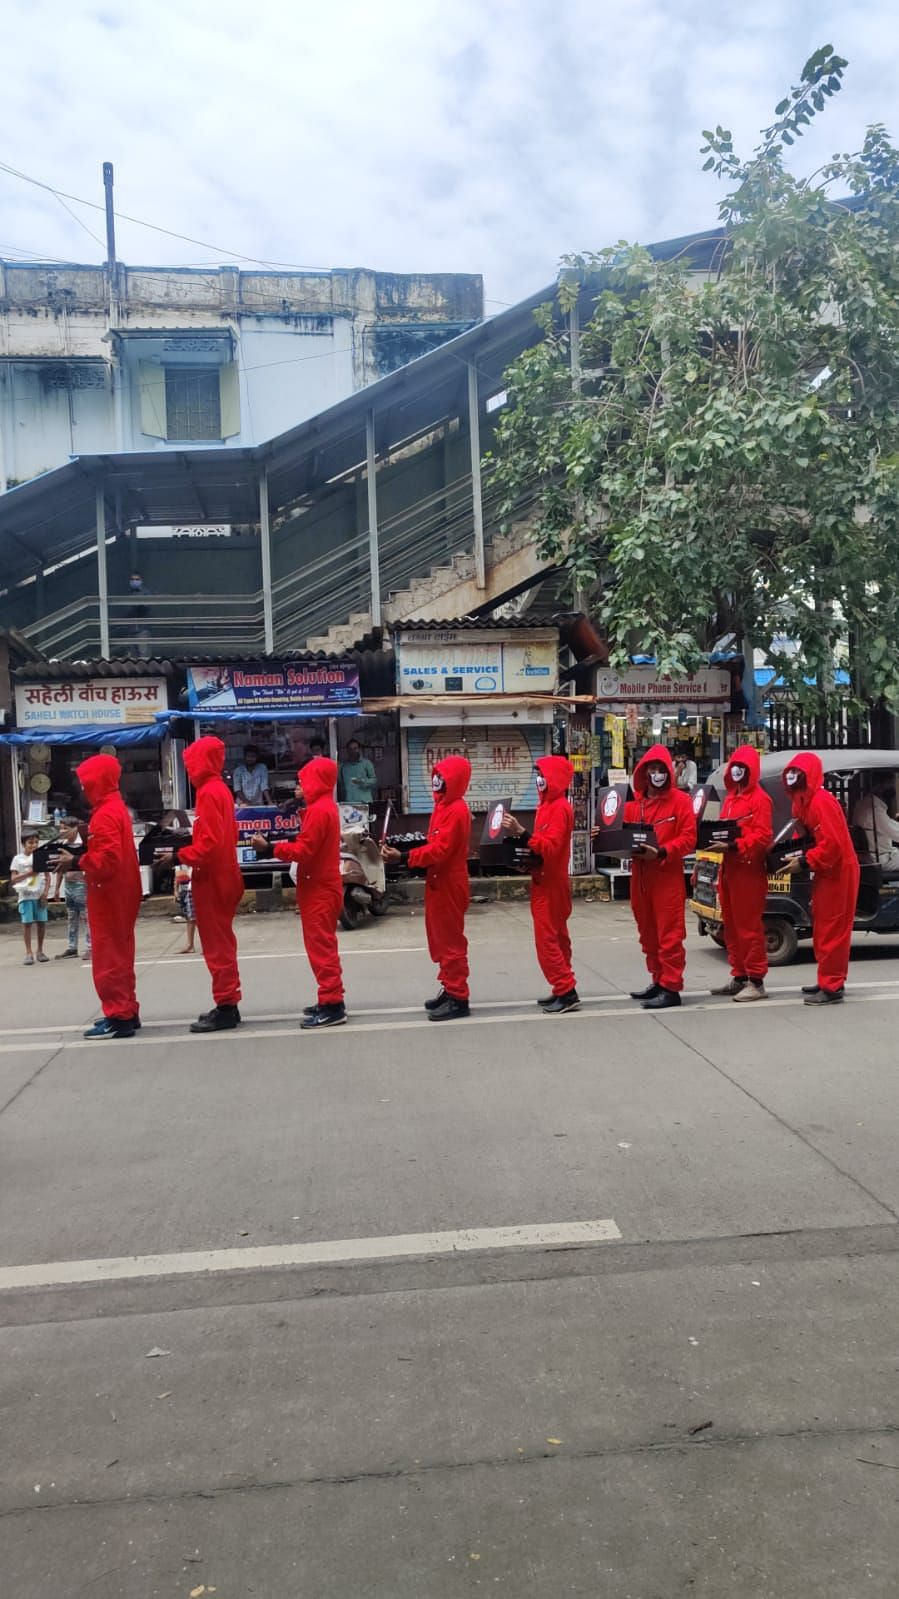 The Dali gang takes over Mumbai streets in 'Money Heist' style